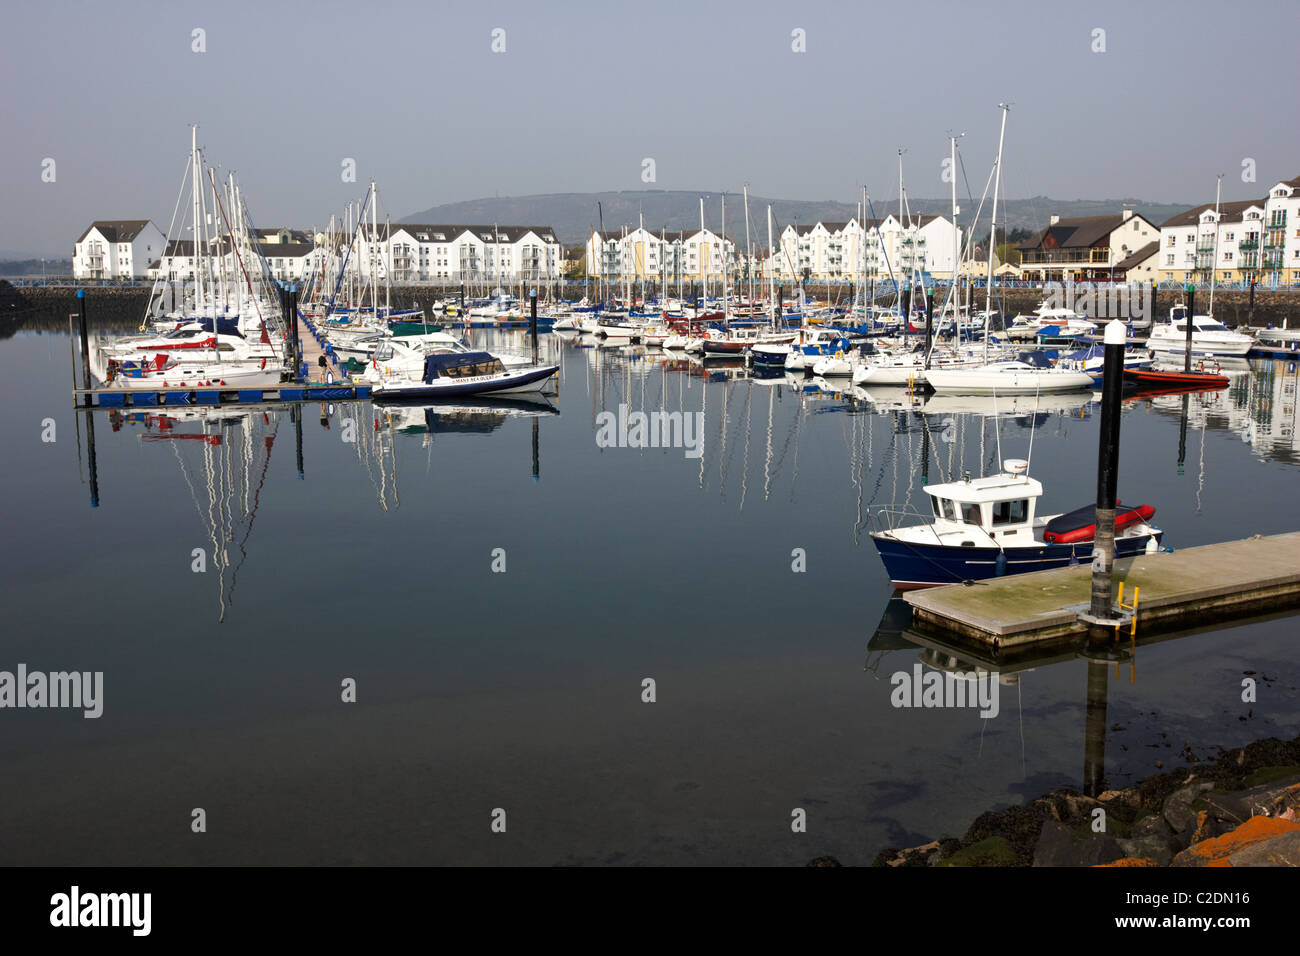 Carrickfergus marina county antrim northern ireland - Stock Image